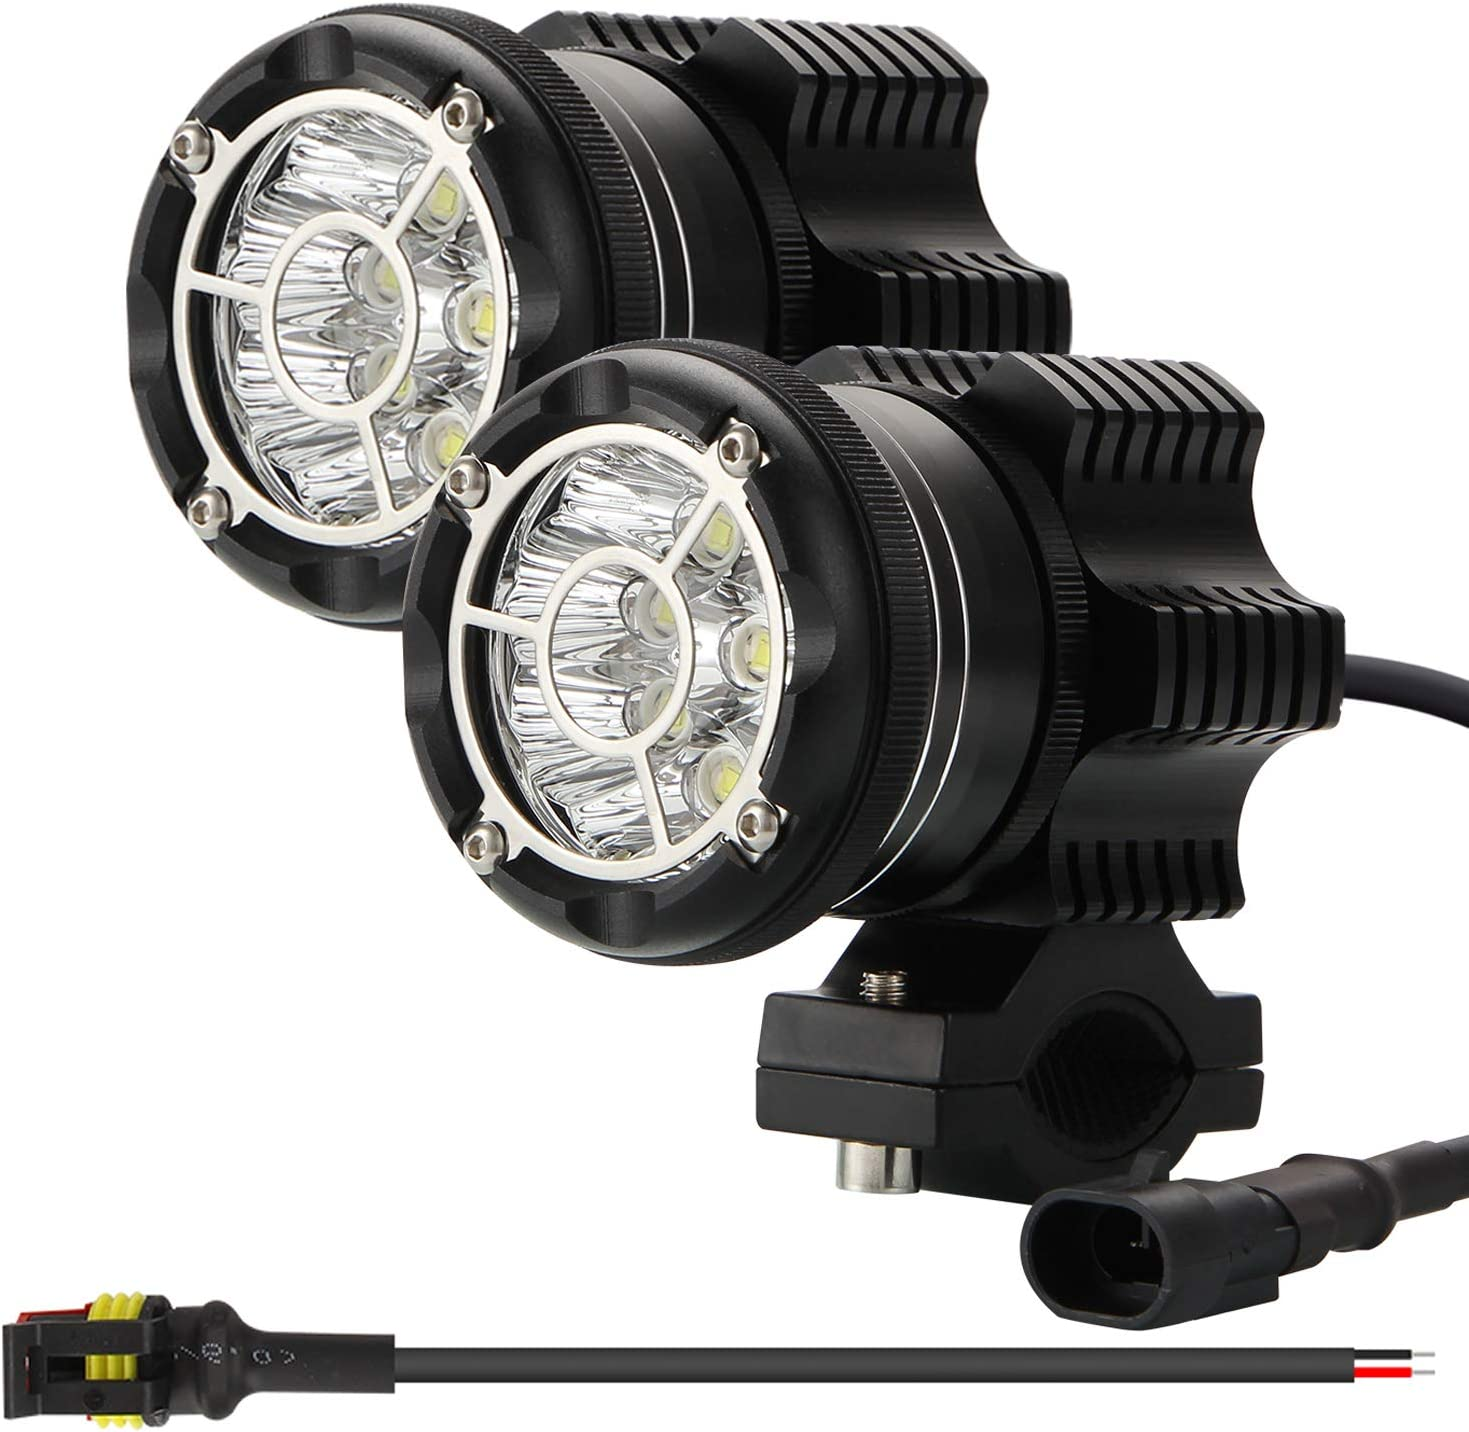 Kairiyard Kit LED Round Headlight EVO 90W 6000K 9000lm Motorcycle Auxiliary Light CREE Chip Additional Light Motorcycle Road Light Spotlight+Flashlight Lens in Tempered Glass Bimode CNC IP68